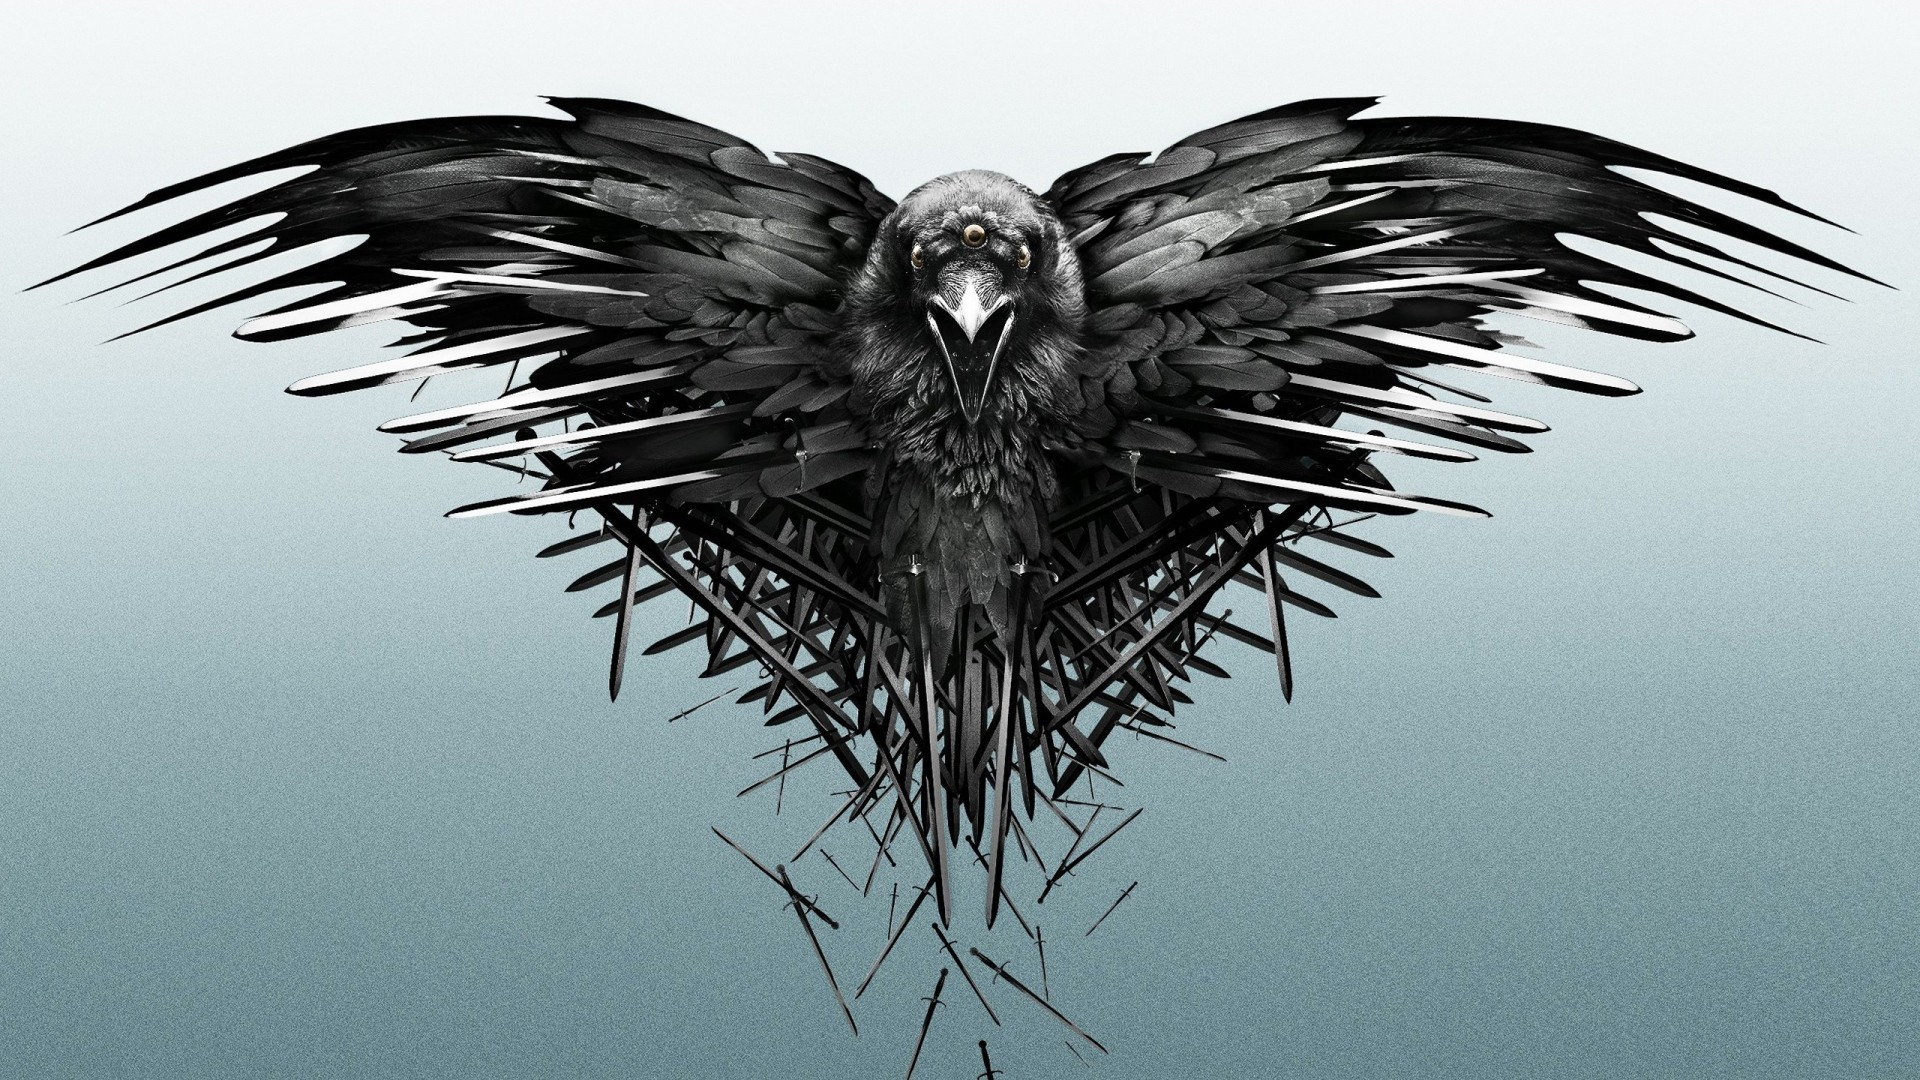 1920x1080  Wallpaper game of thrones, game, raven